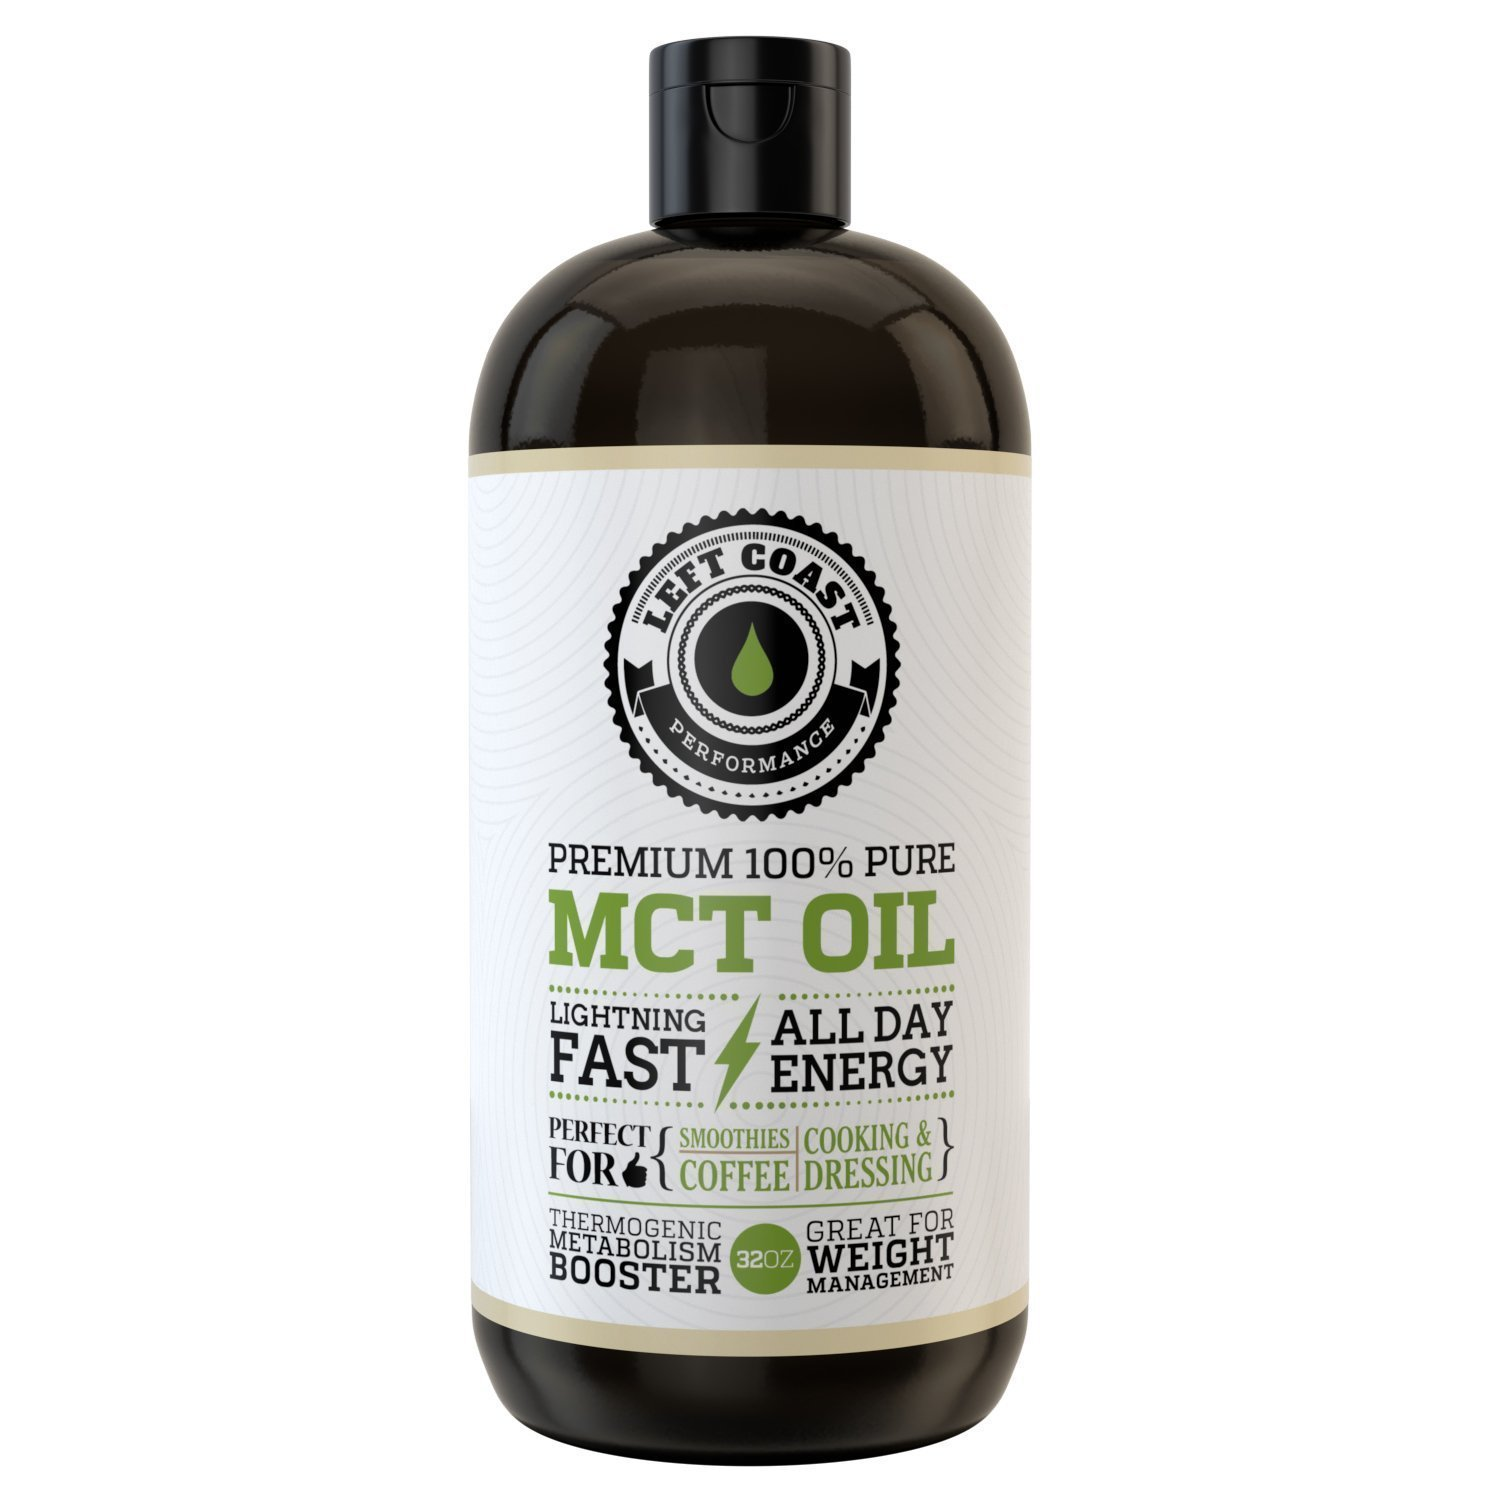 Premium MCT Oil from sustainable Coconuts. Huge 32 Oz. Keto, Easier To Absorb and Digest. Triple Filtered. Independent Quality Testing for every batch. Keto & Paleo Friendly. Packaged in USA.